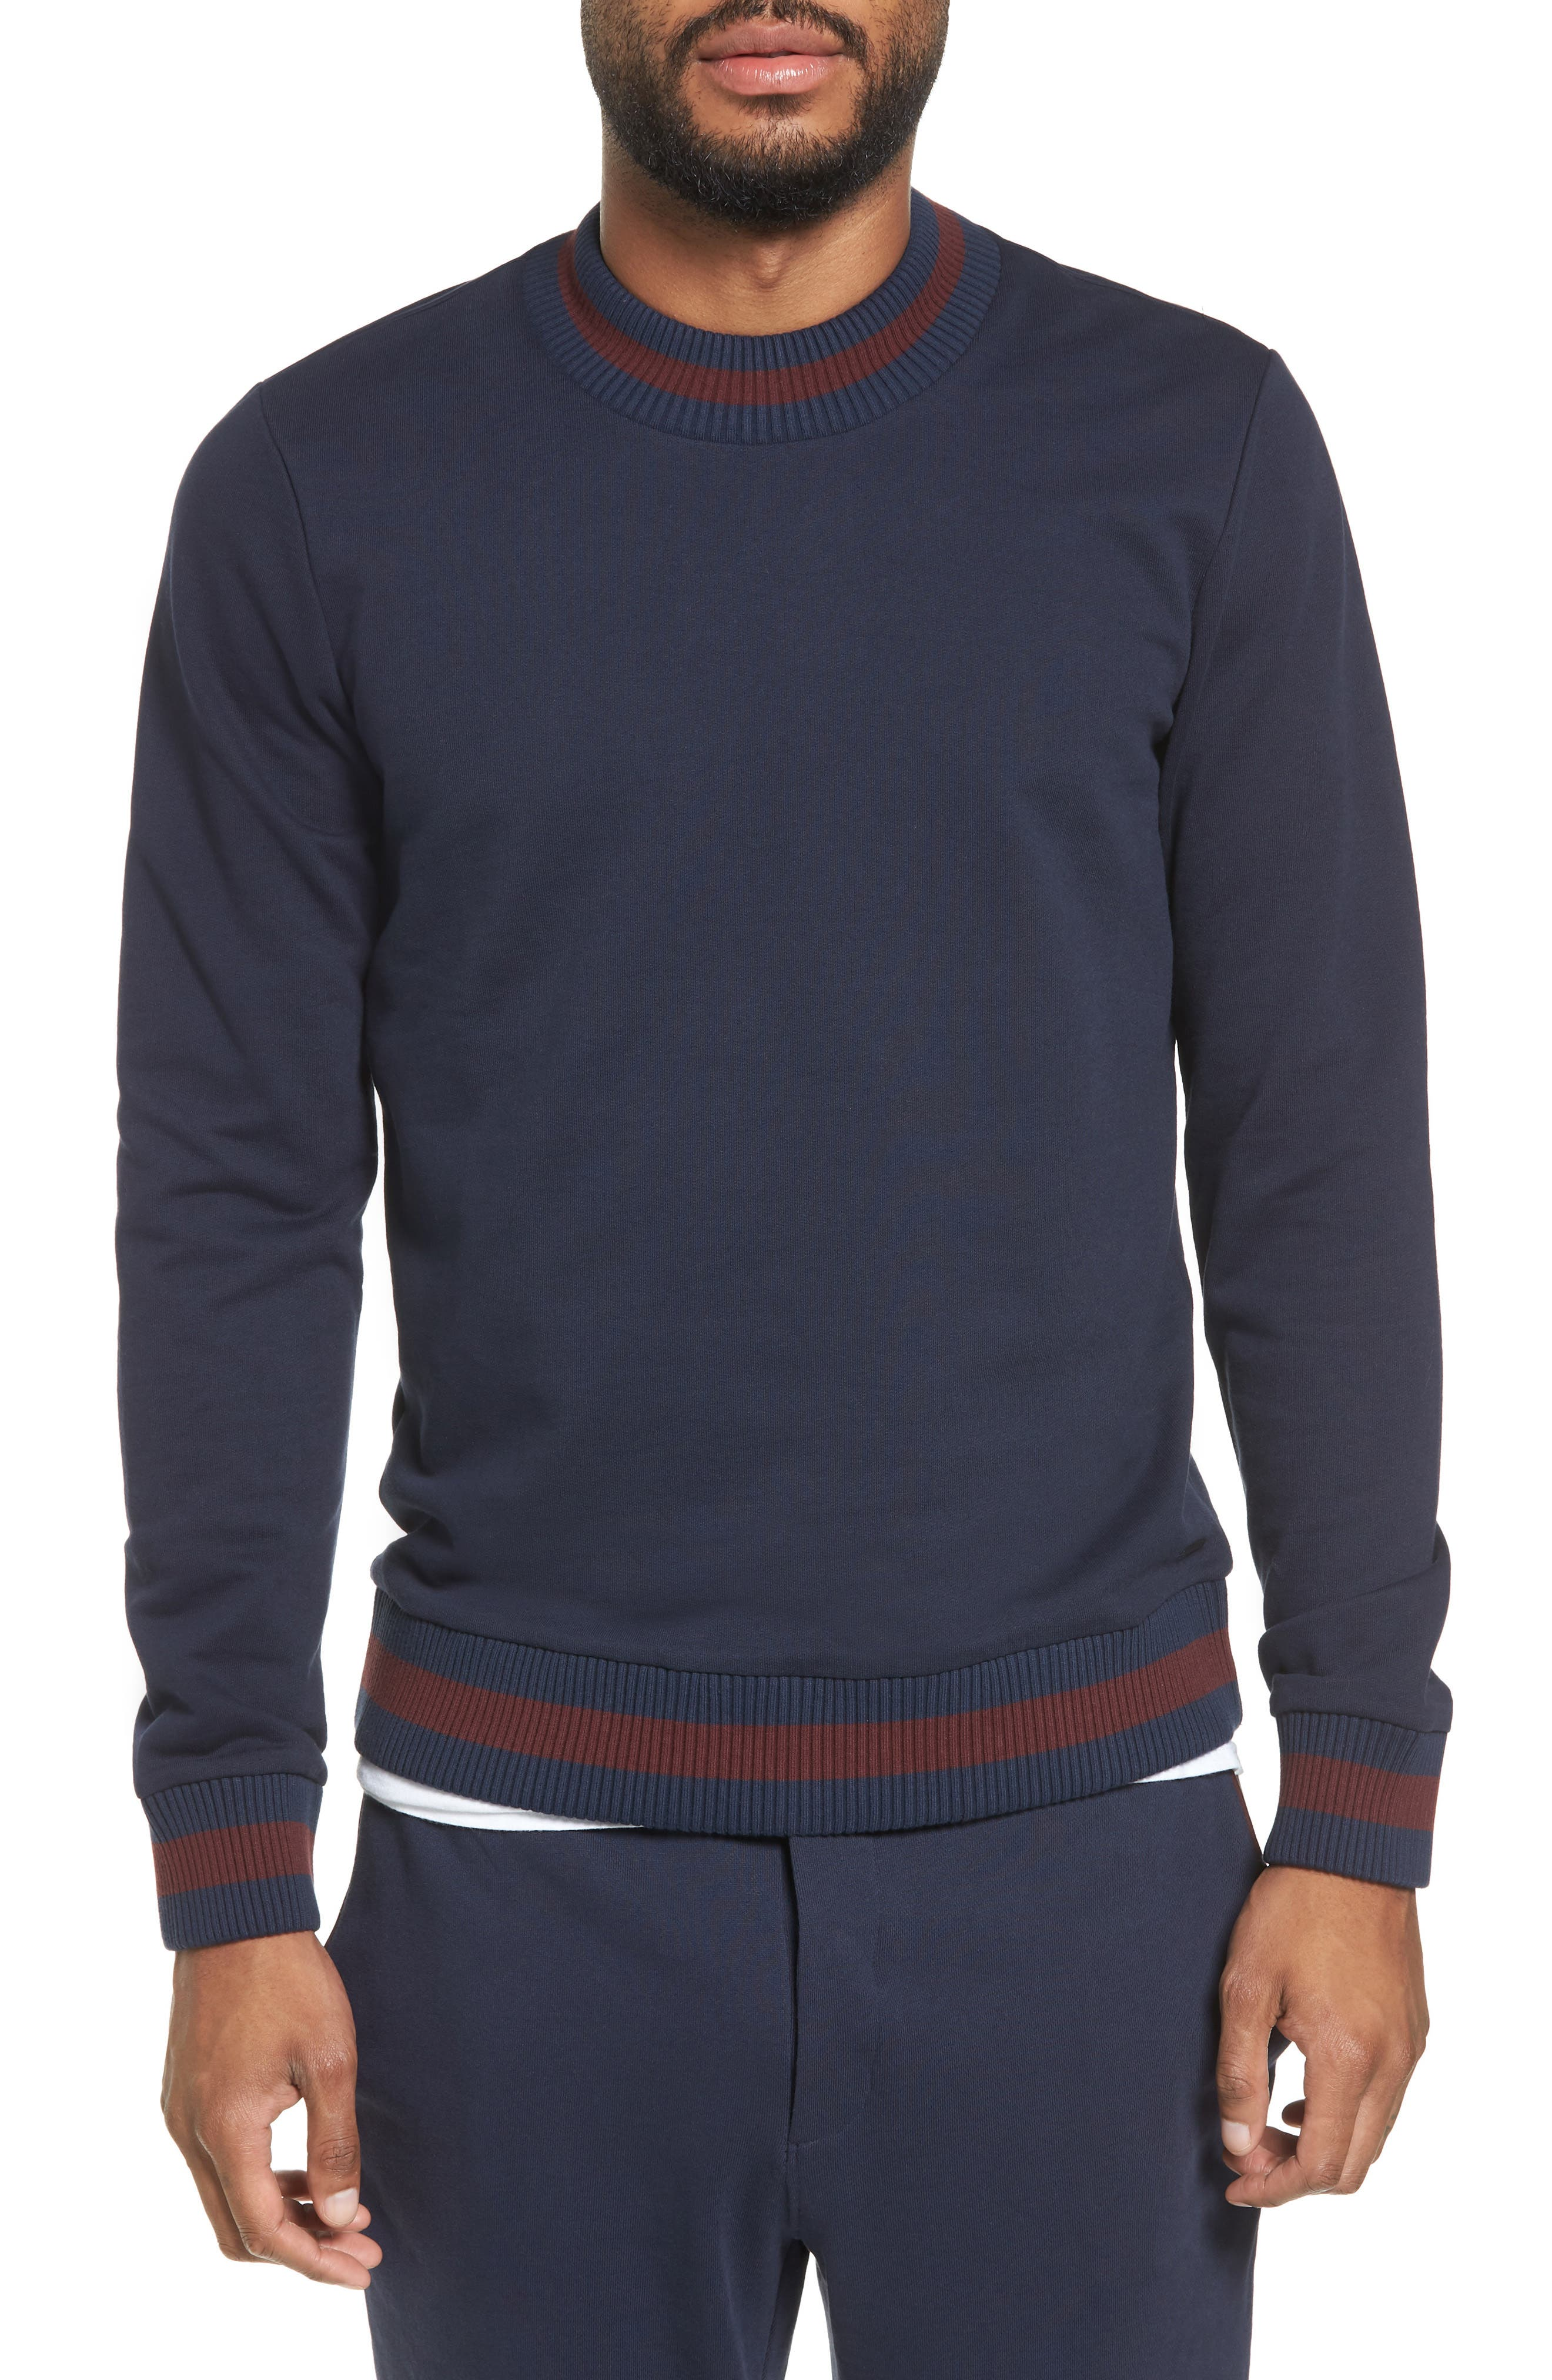 Skubic Slim Crewneck Sweatshirt,                         Main,                         color, Navy